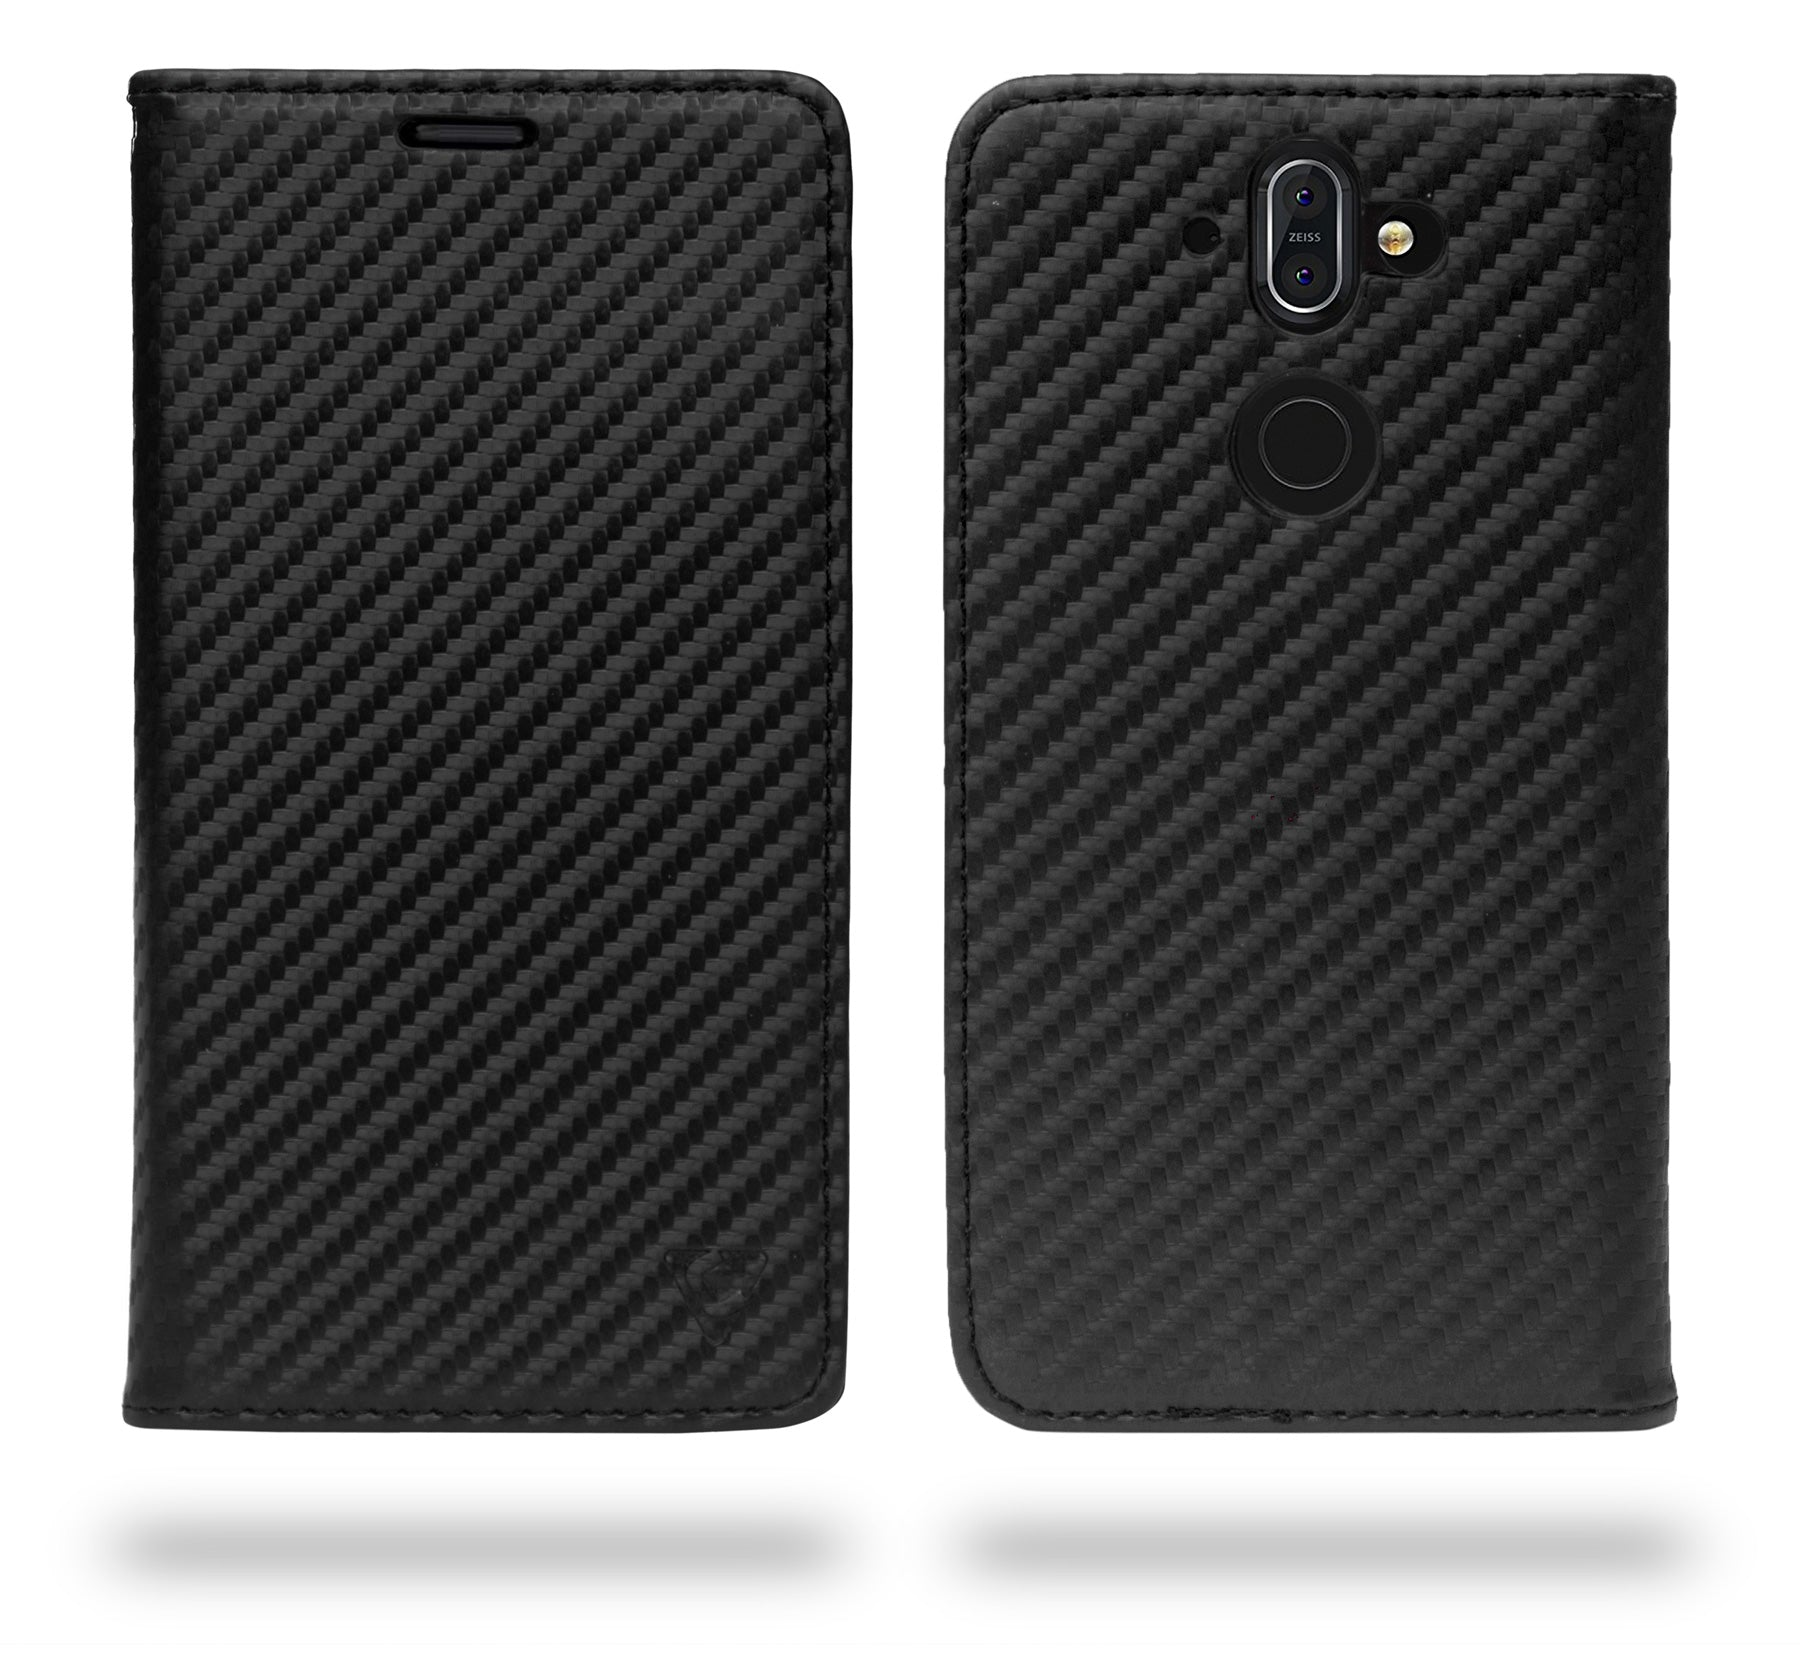 Ceego Compact Carbon Fiber Flip Cover for Nokia 8 Sirocco With Magnetic Lock (Super Black)